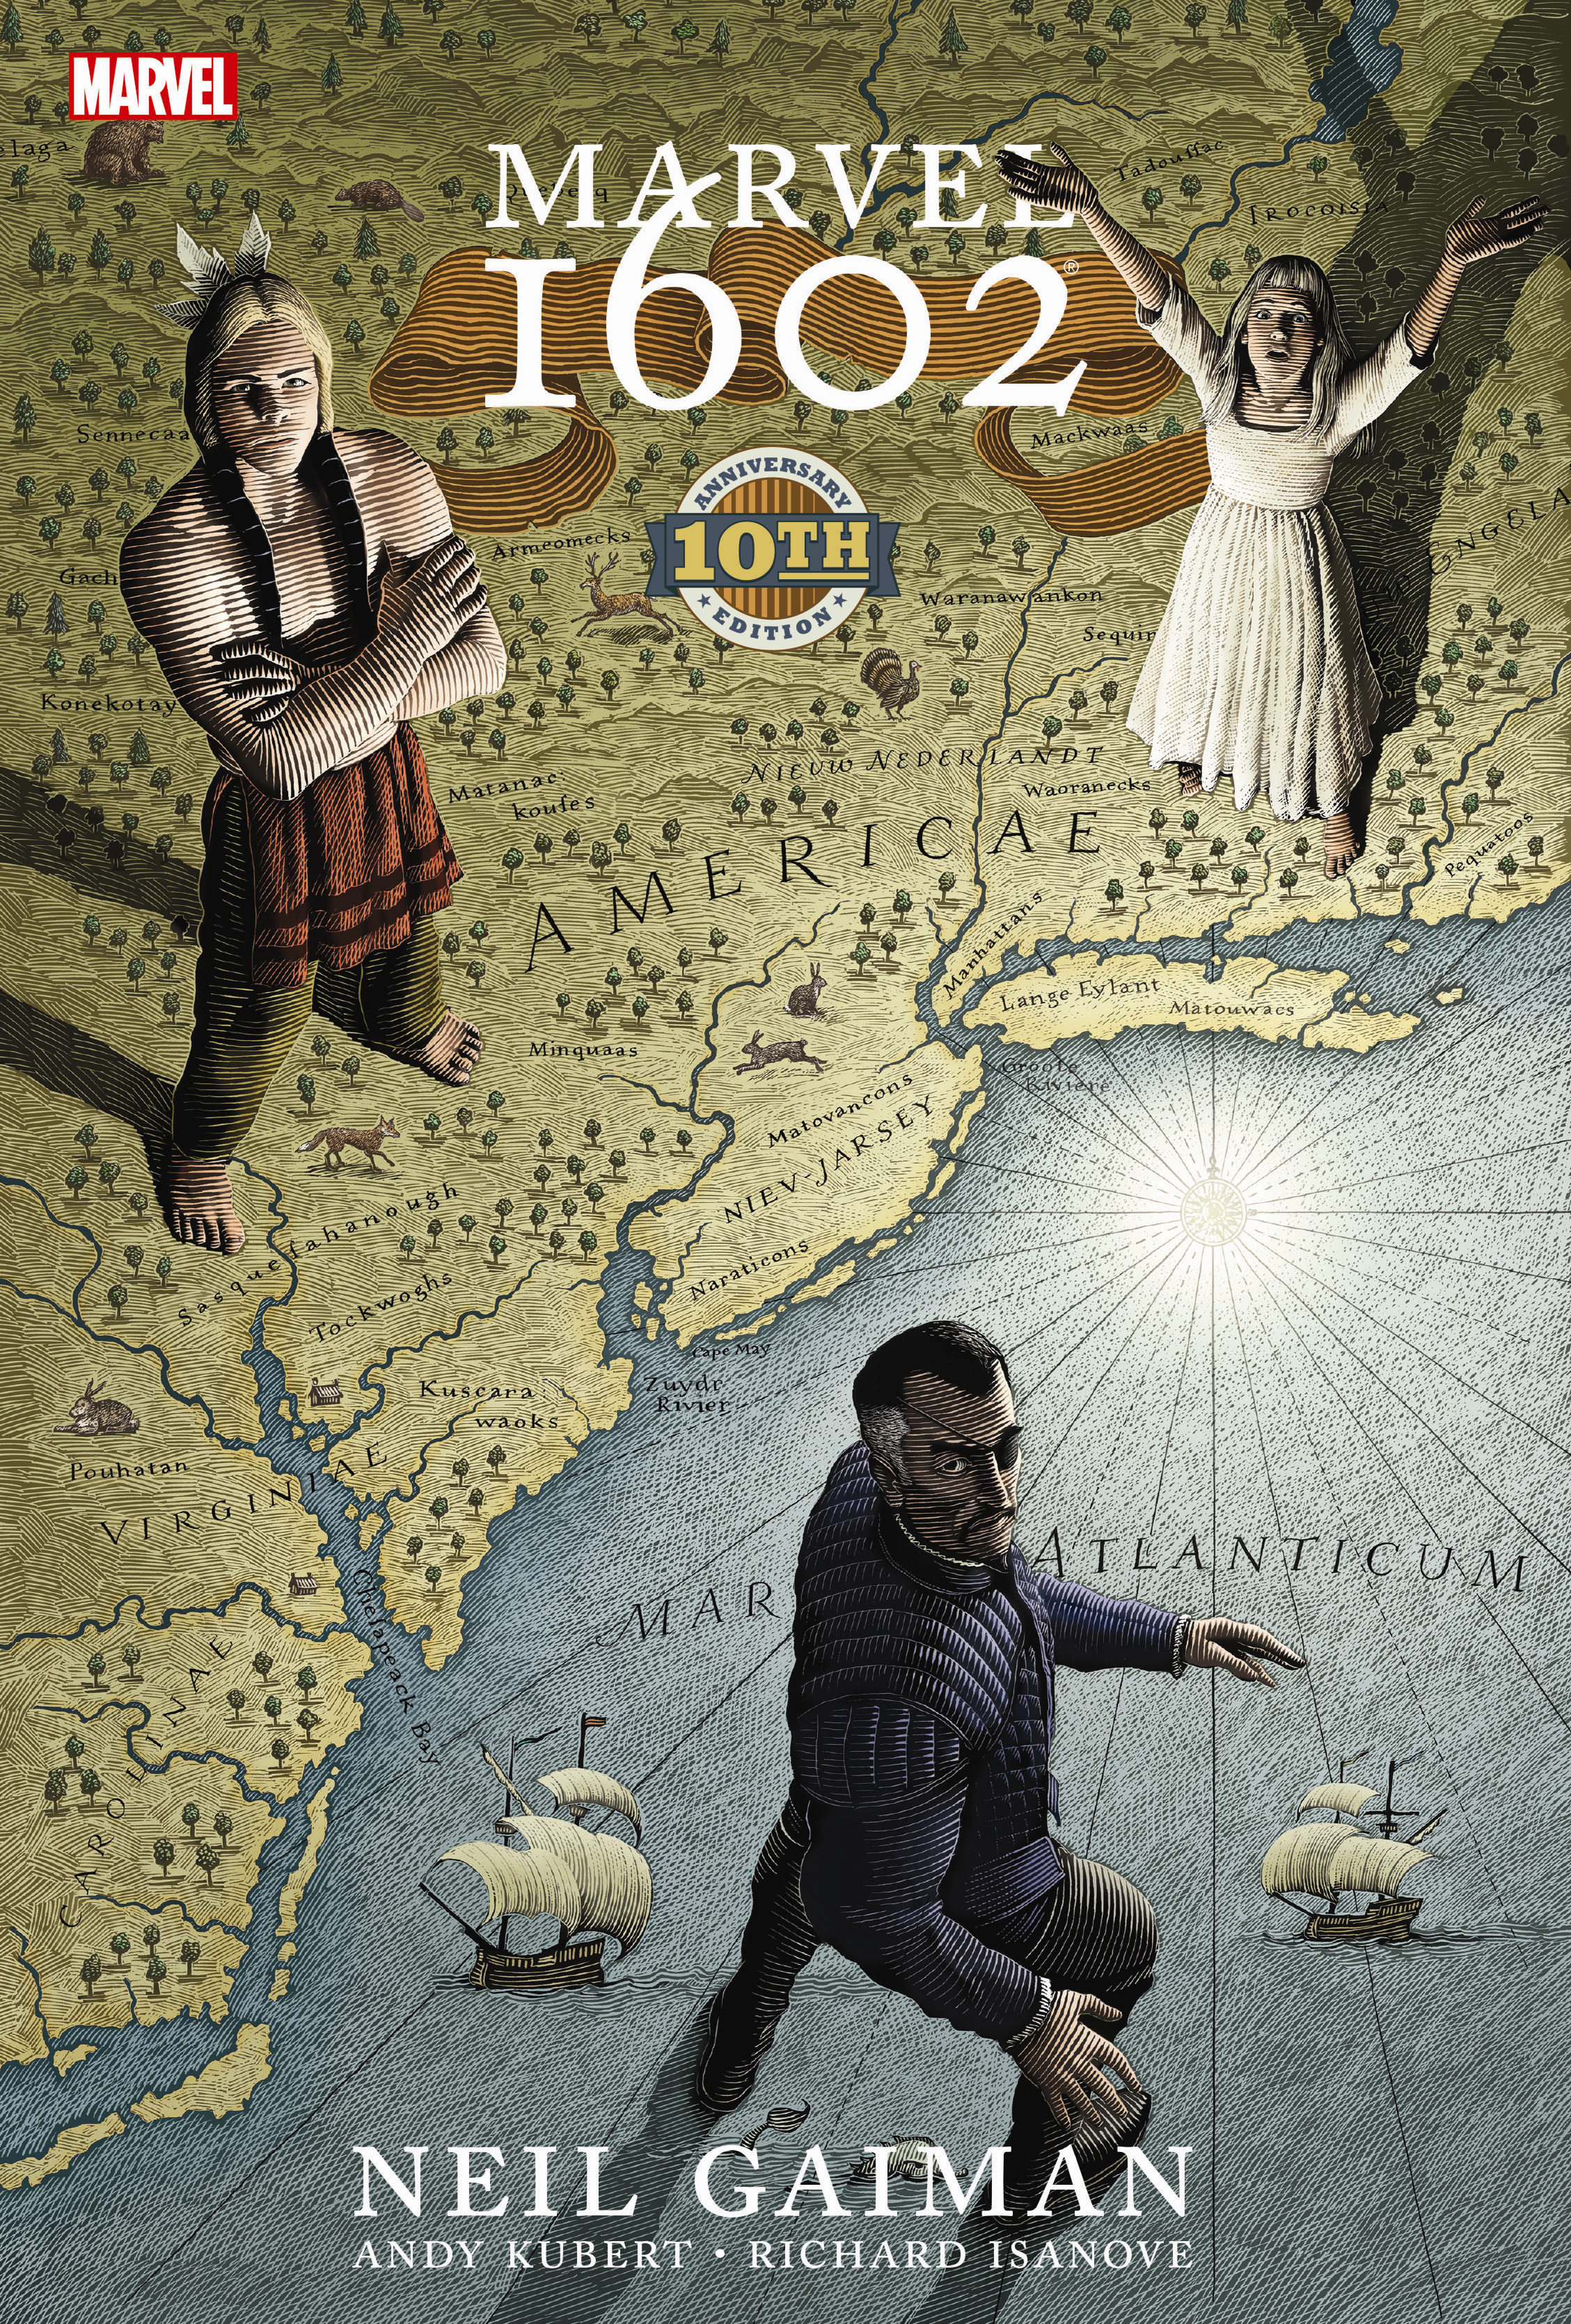 MARVEL 1602 HC 10TH ANNIVERSARY EDITION